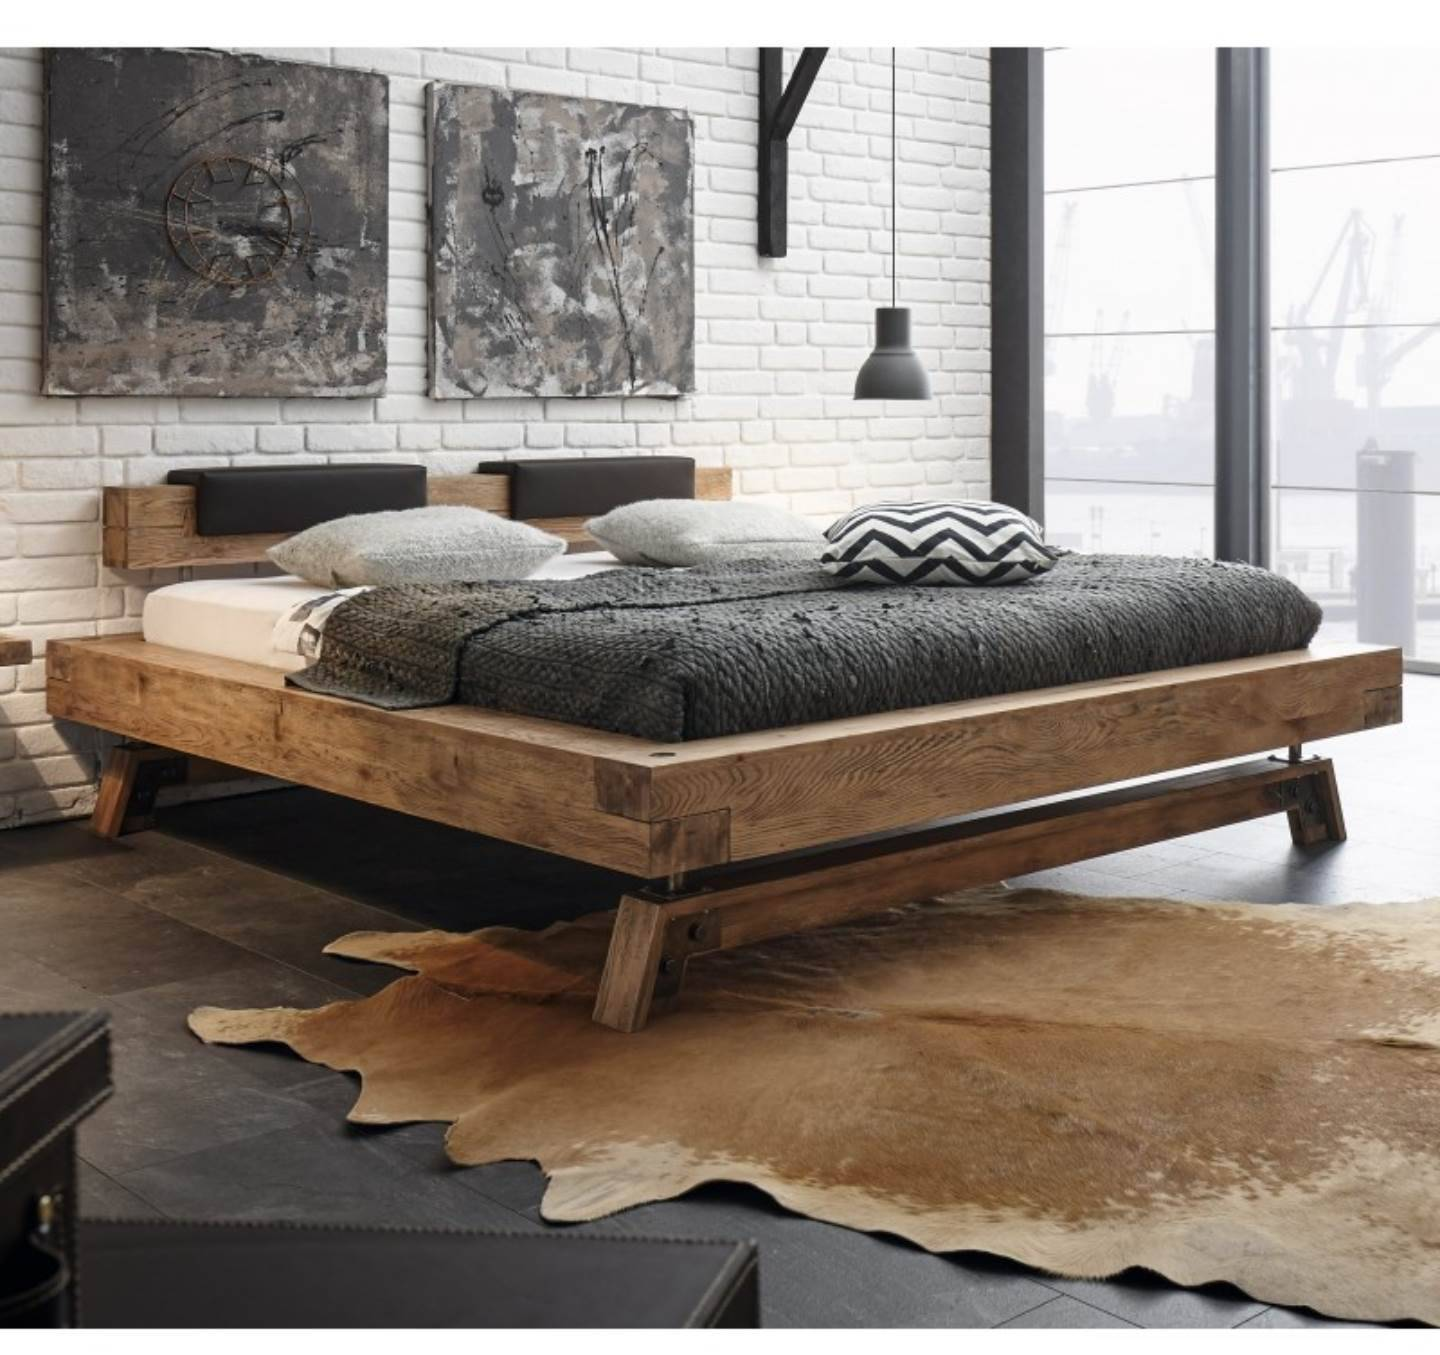 lit complet h avec matelas latex 180x200 10ans de garantie betten matratzen. Black Bedroom Furniture Sets. Home Design Ideas